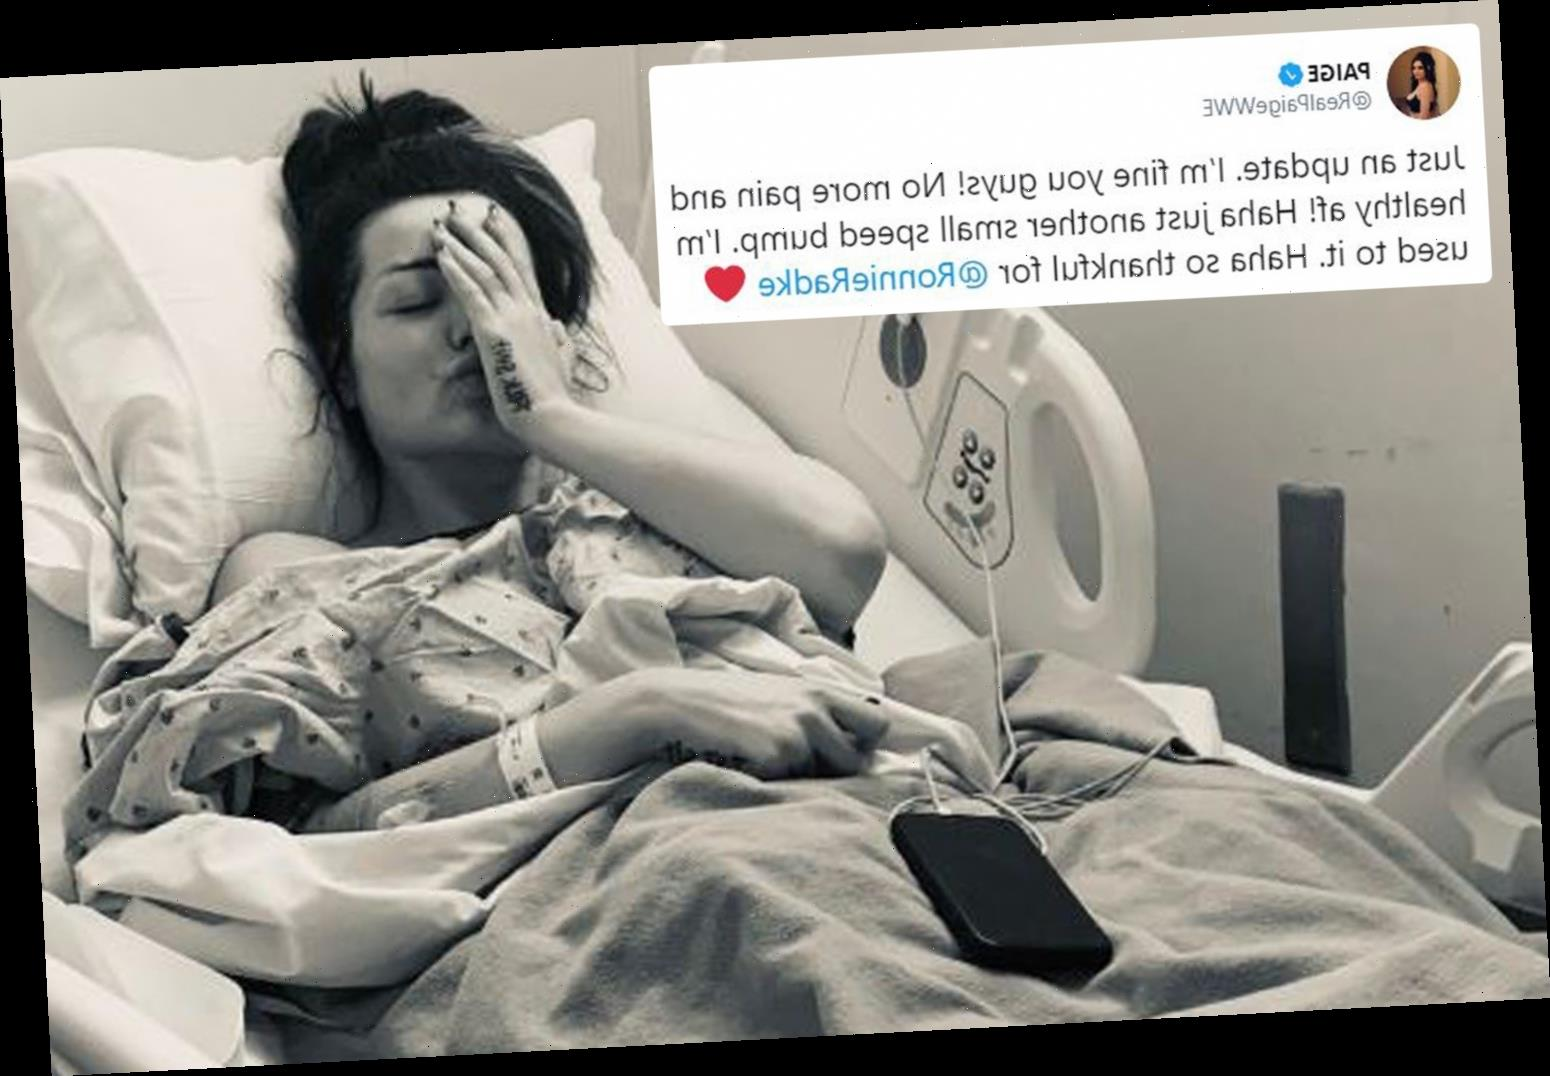 British WWE star Paige undergoes emergency surgery to remove an ovarian cyst – The Sun